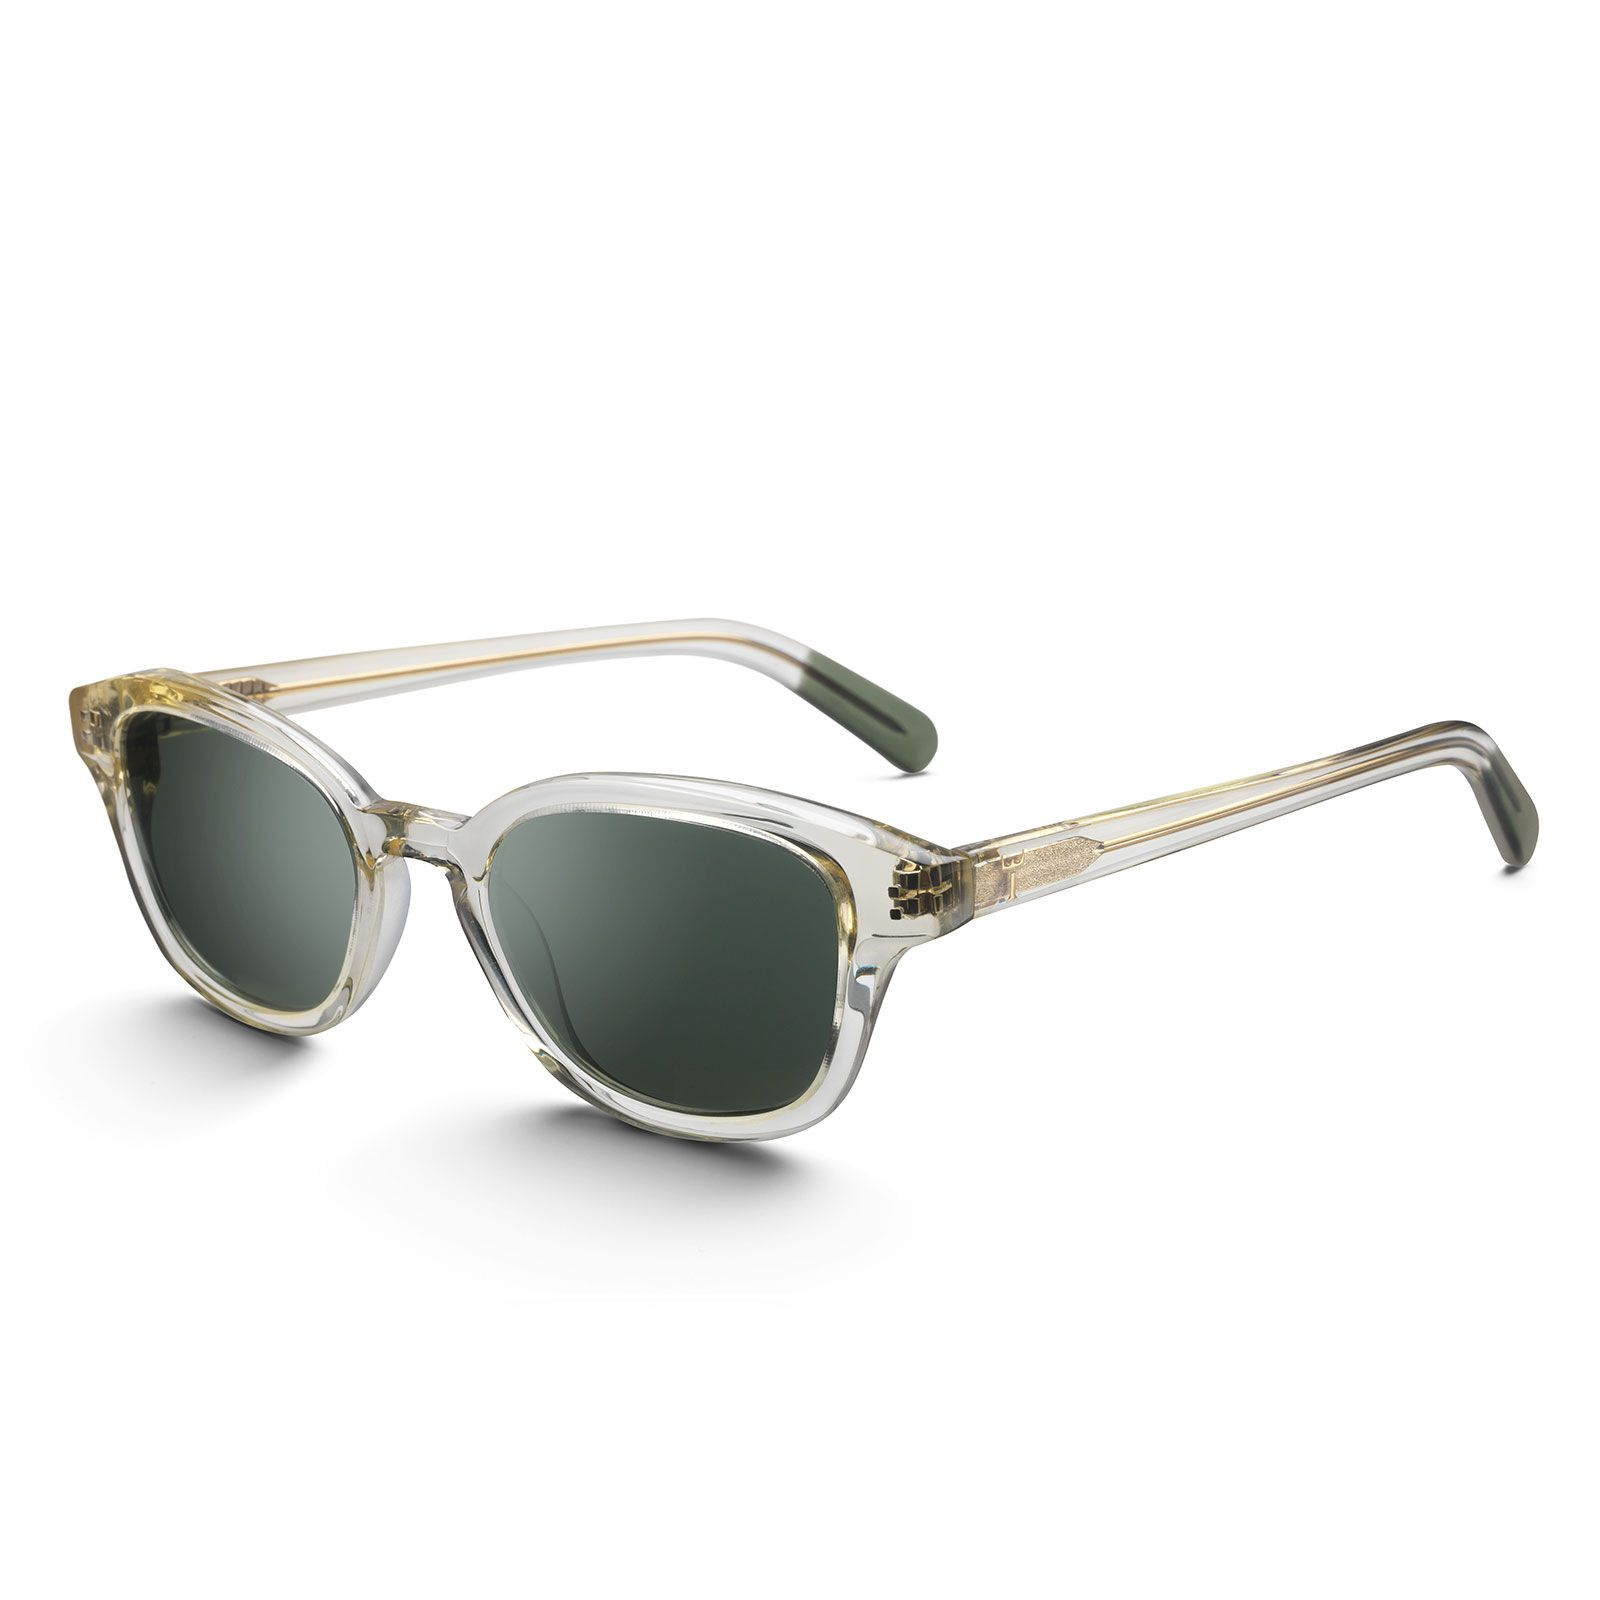 Crystal Frank - Material: Hand cut acetate \nColour: Transparent\nColour on temple ends: green\nMaterial processing: Polished\nLens: Carl Zeiss, 100% UV protection\nLens colour: Grey\nMetal details: Silver plated logo